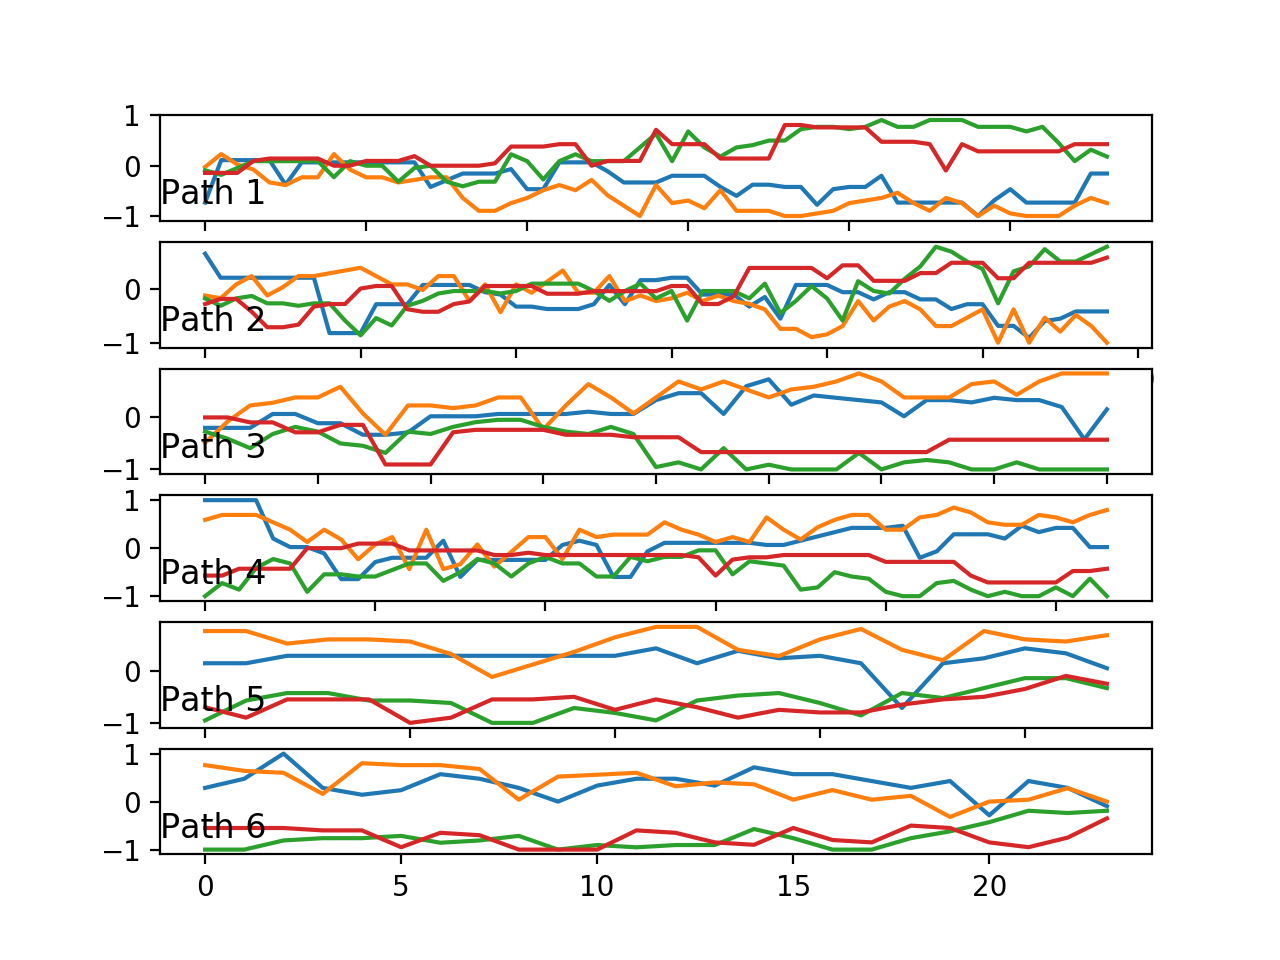 Line plots of one trace (4 variables) for each of the six paths